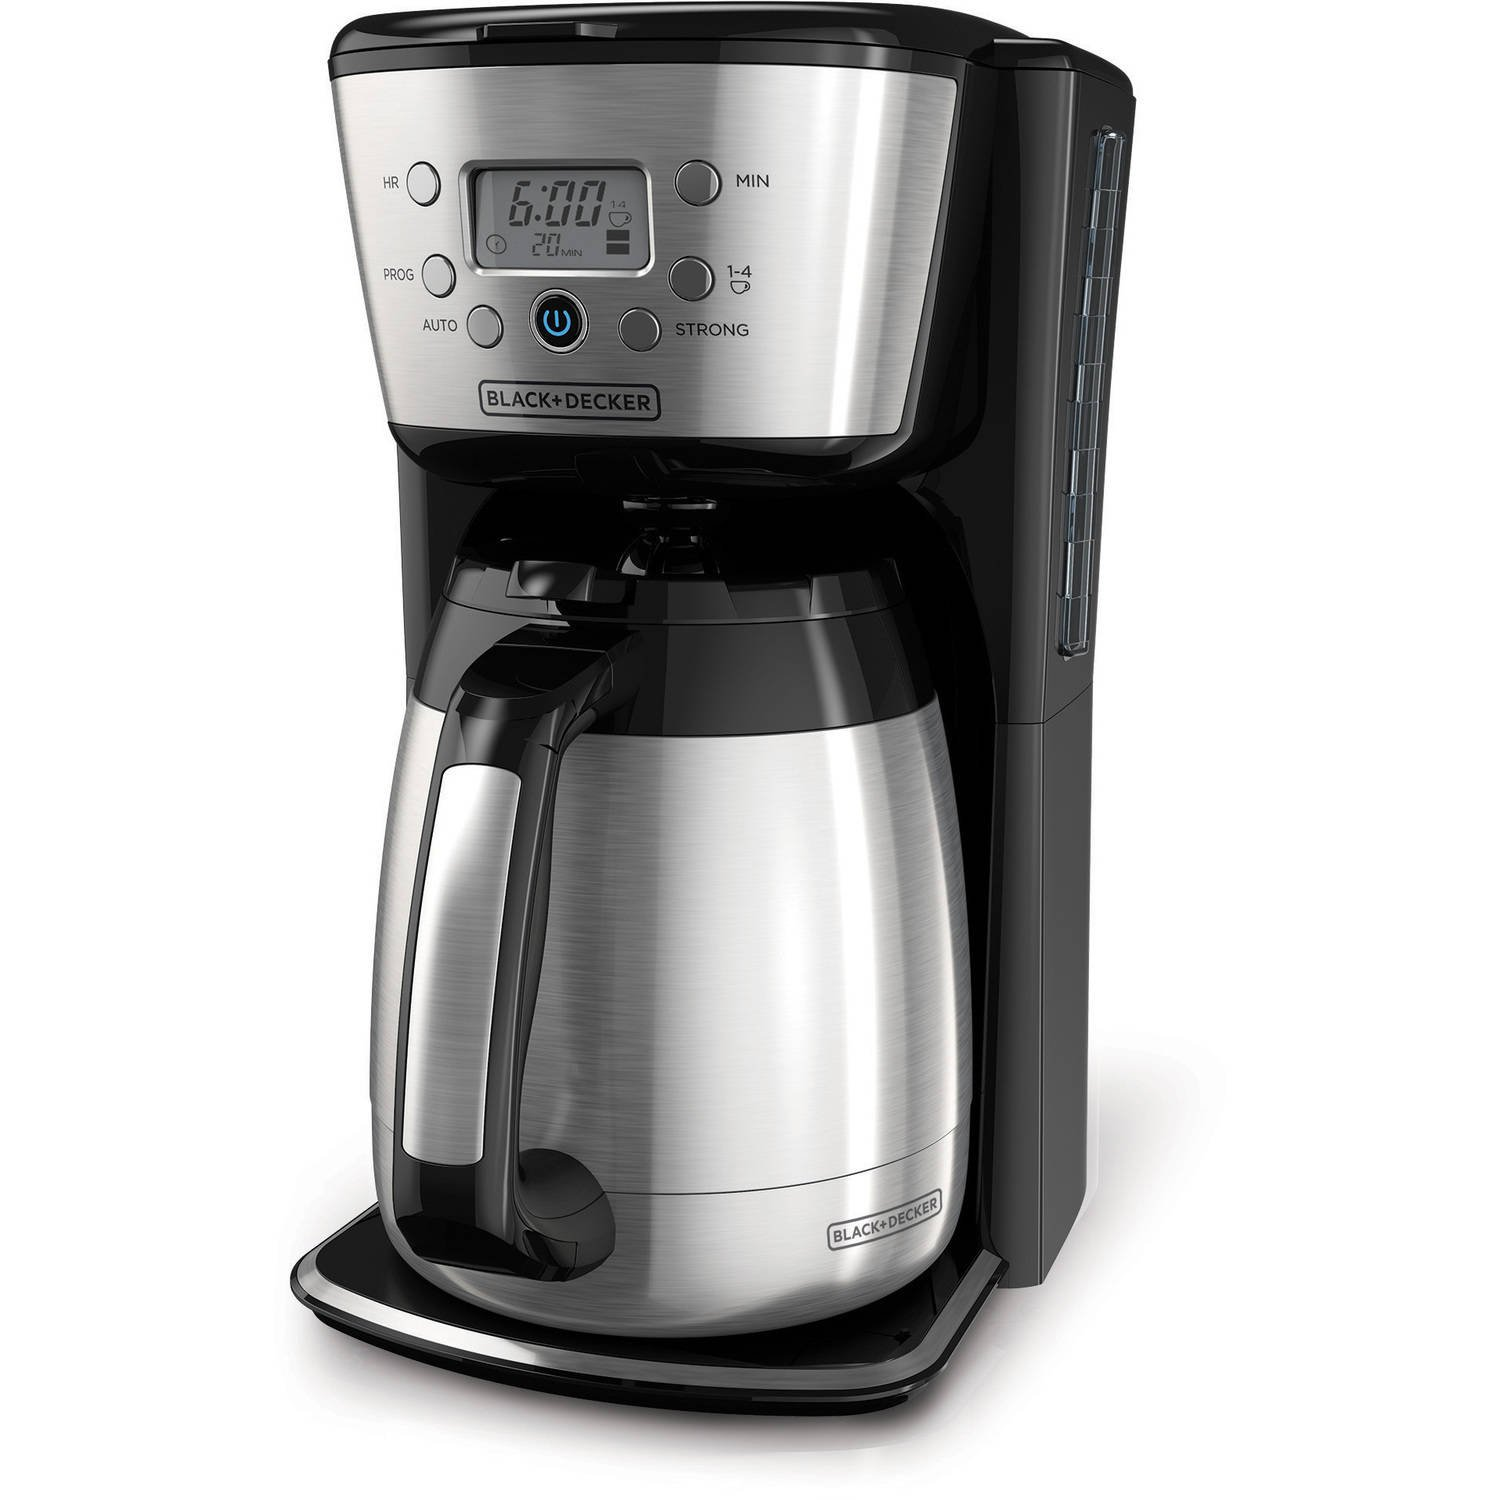 Black and decker coffee maker 12 cup programmable - Amazon Com Black Decker Cm2036s 12 Cup Thermal Coffeemaker Black Silver Kitchen Dining